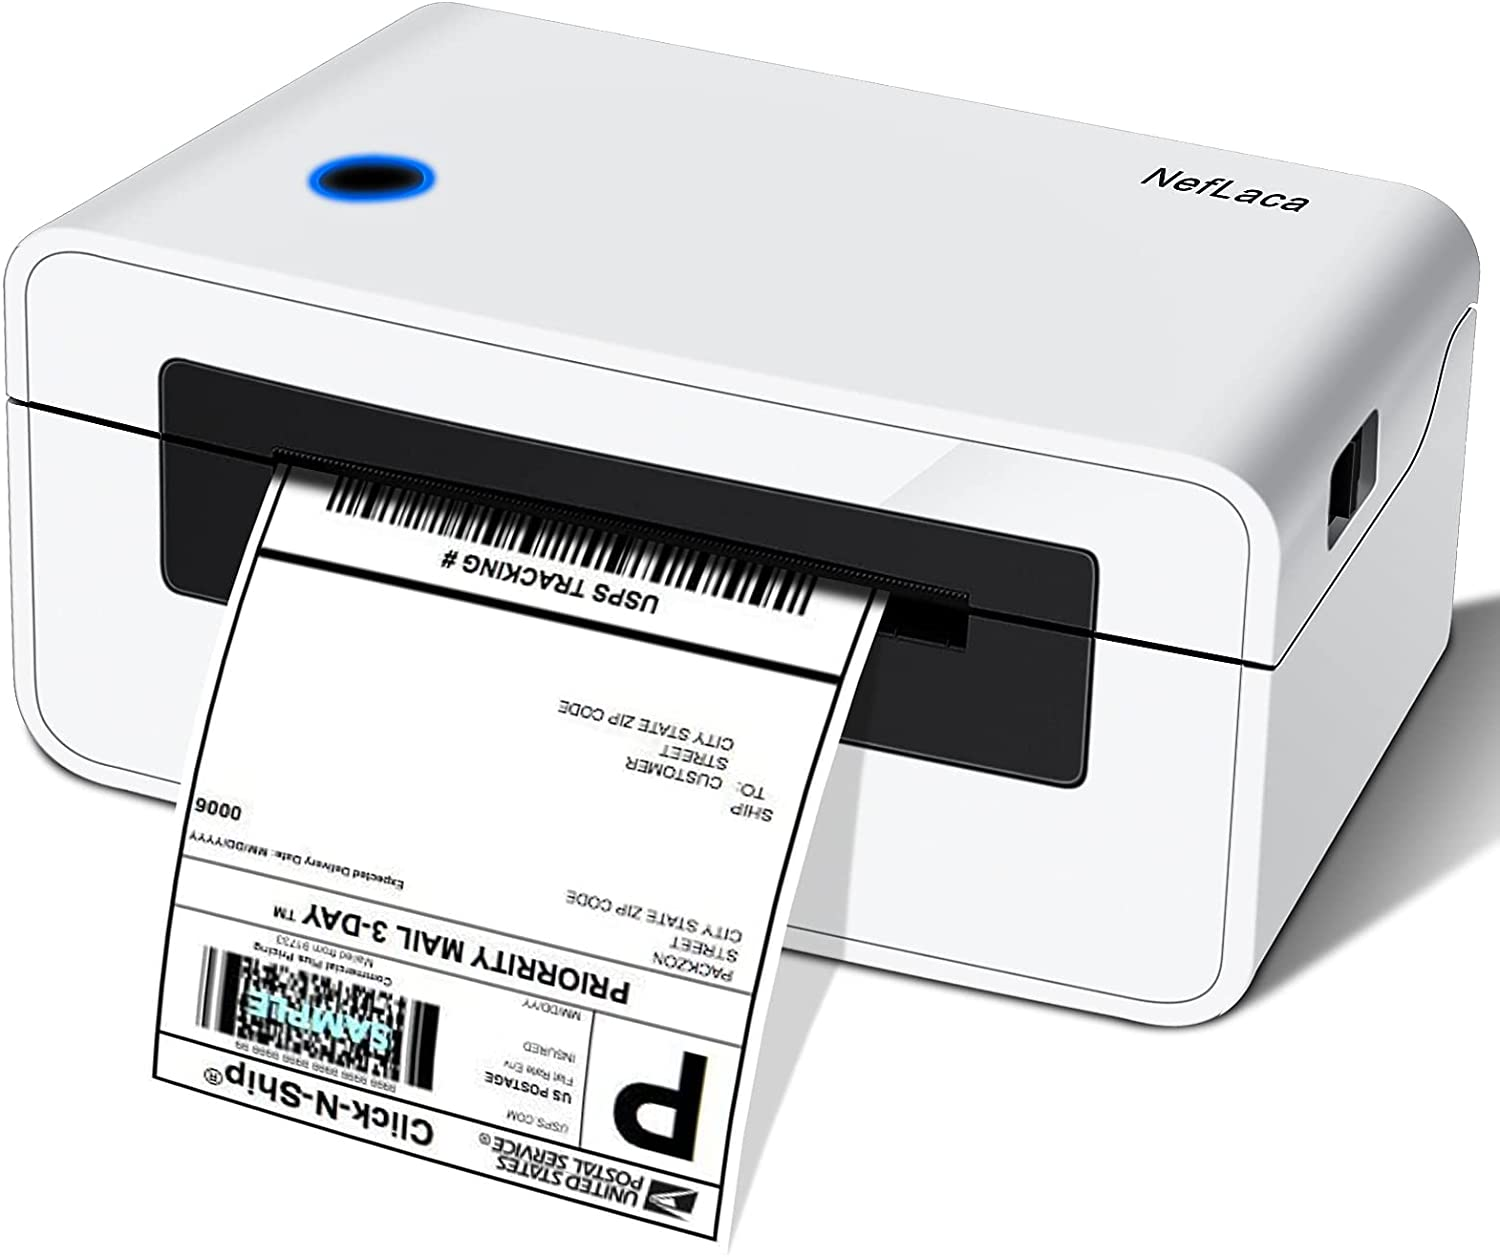 Thermal Label Printer - with 4X6 100 Pcs Direct Thermal Shipping Labels for Shipping Packages Postage Home Small Business, Compatible with Etsy, Shopify,Ebay, Amazon, FedEx